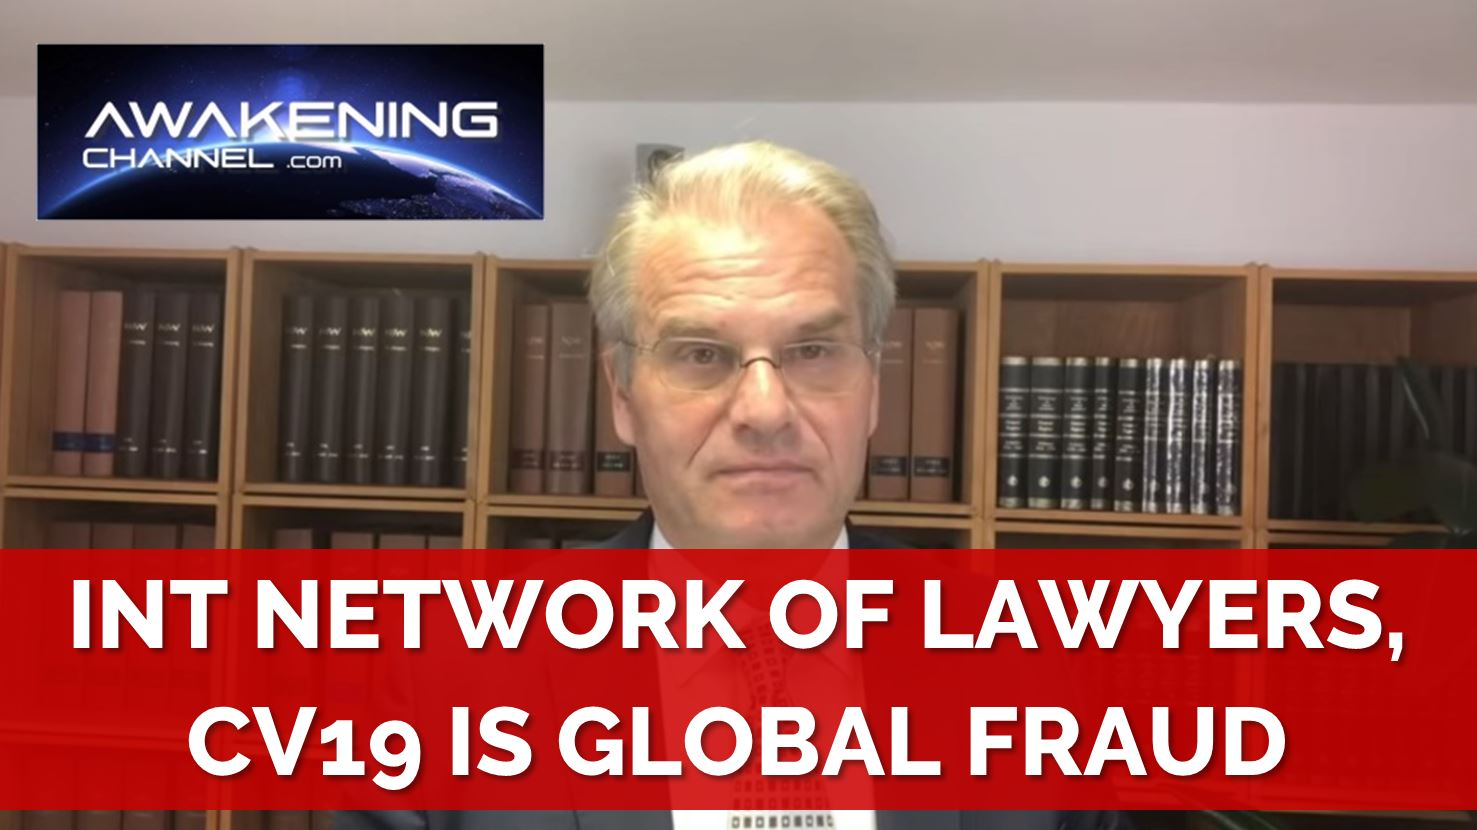 International Network of Lawyers, the CV19 crisis is a Fraud and those Responsible will be Sued (Part 1)